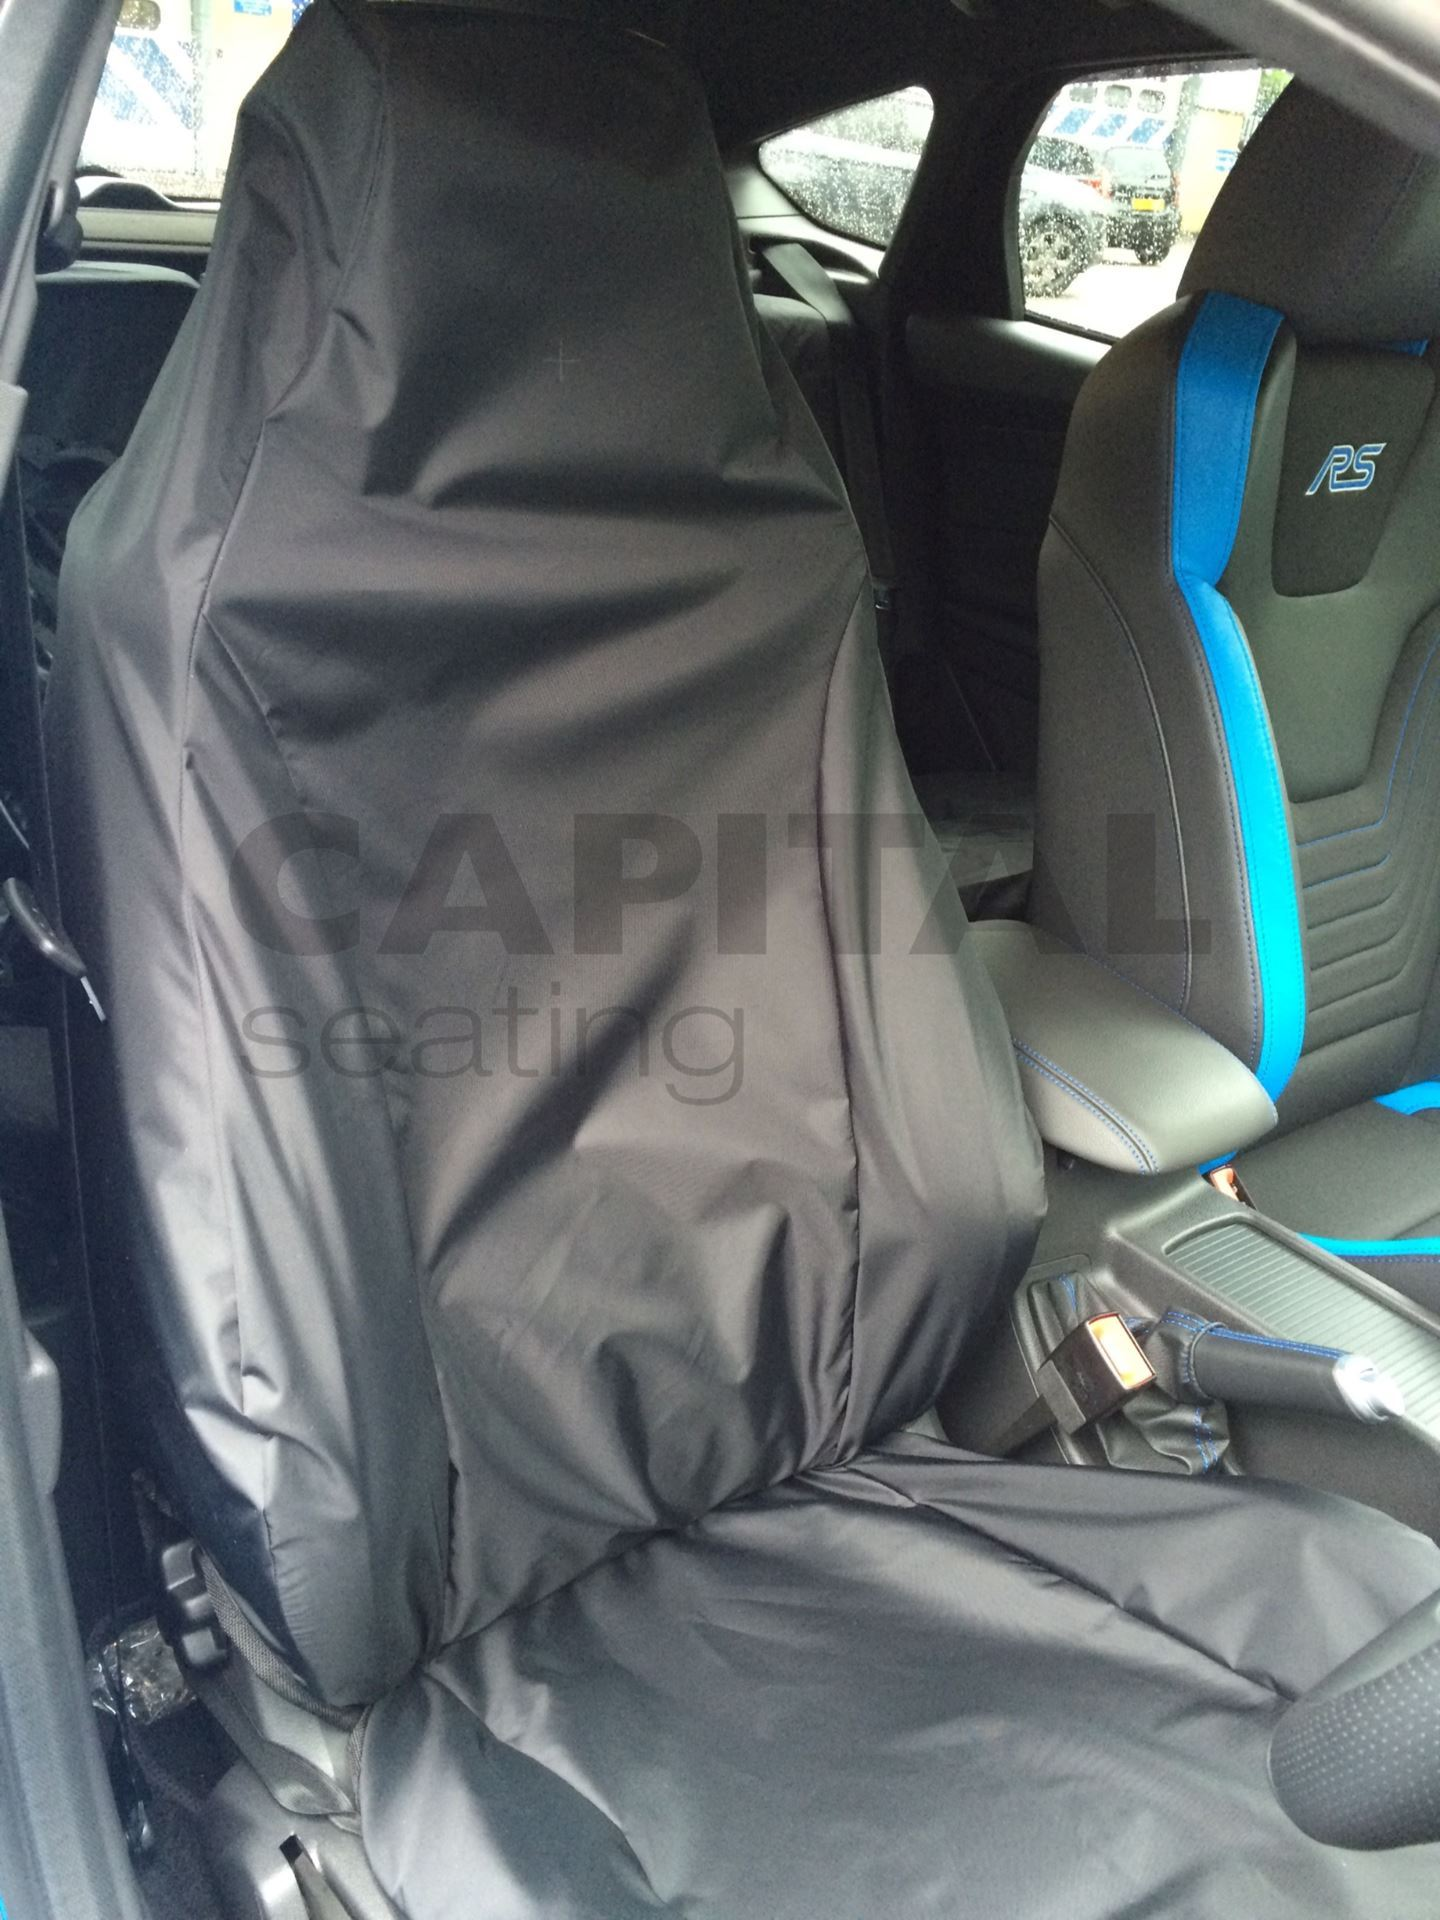 Capital Seating And Vision Seating Vision And Accessories For Hardworking Environments Ford Focus Rs Mk3 Standard Protective Seat Cover